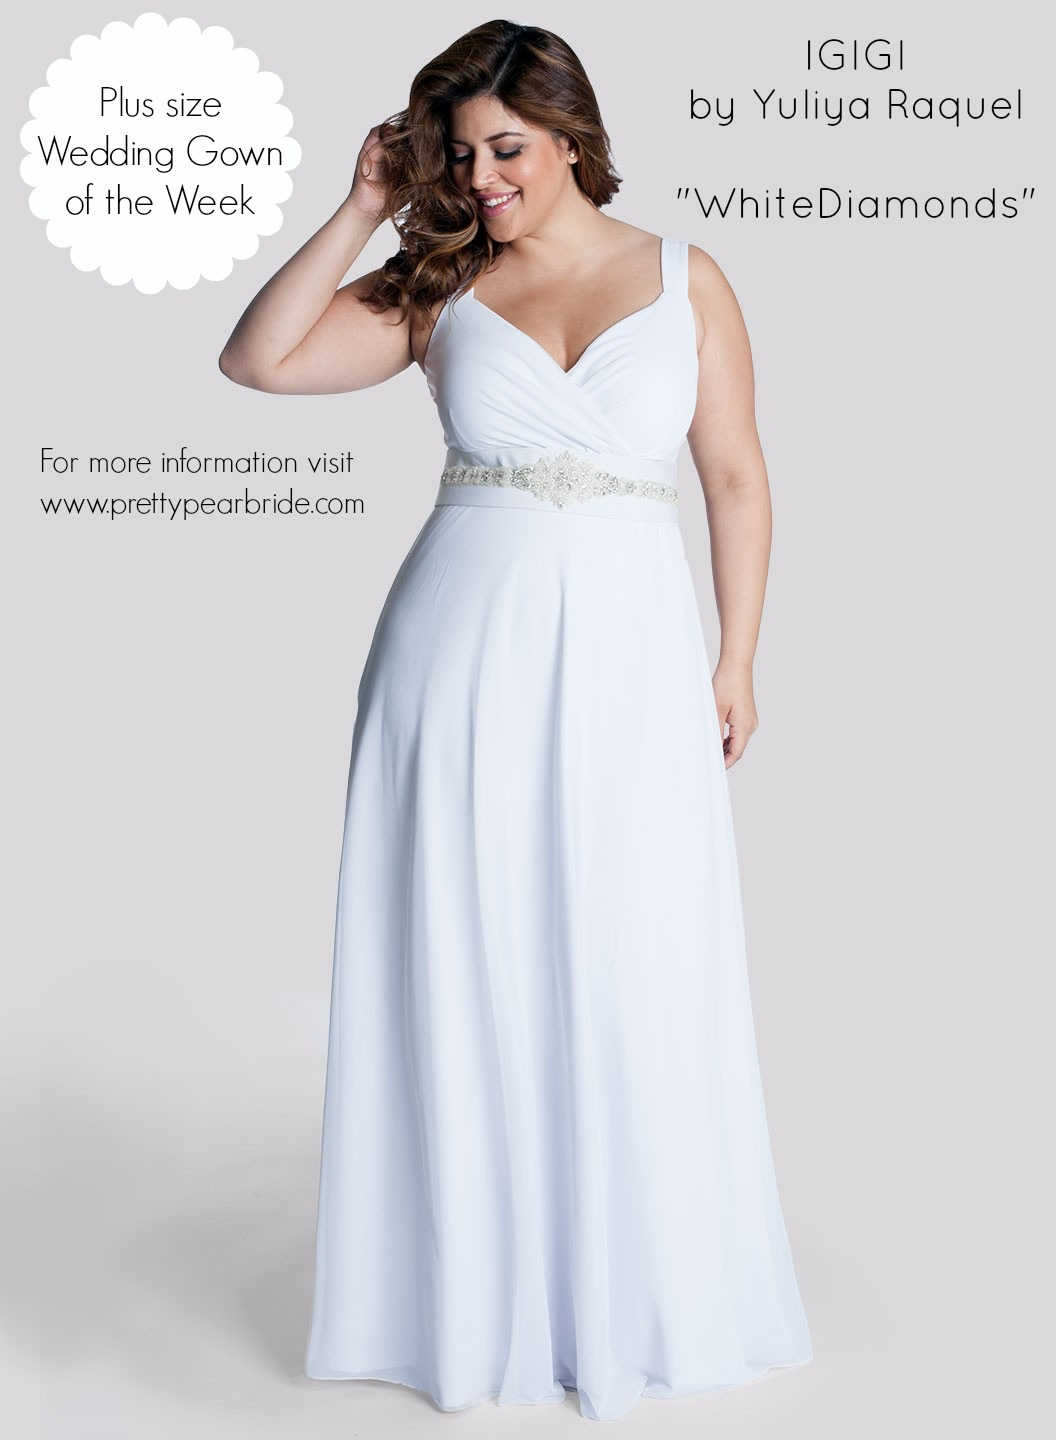 s plus+size+wedding+dress+of+the+week flowy wedding dresses Plus Size Wedding Dress of the Week IGIGI White Diamonds